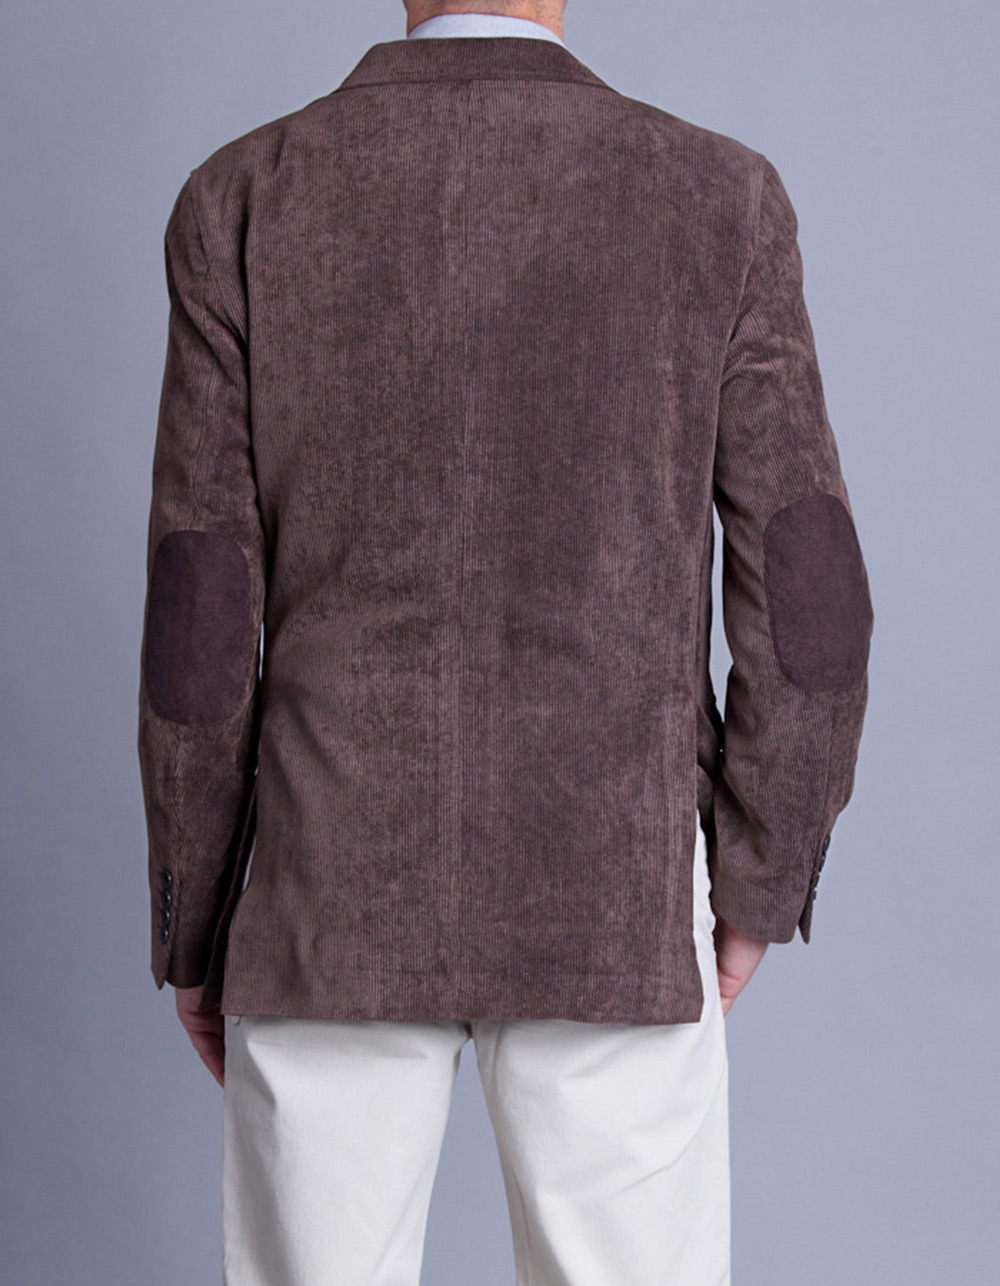 Corduroy jacket with elbow pads - Backside